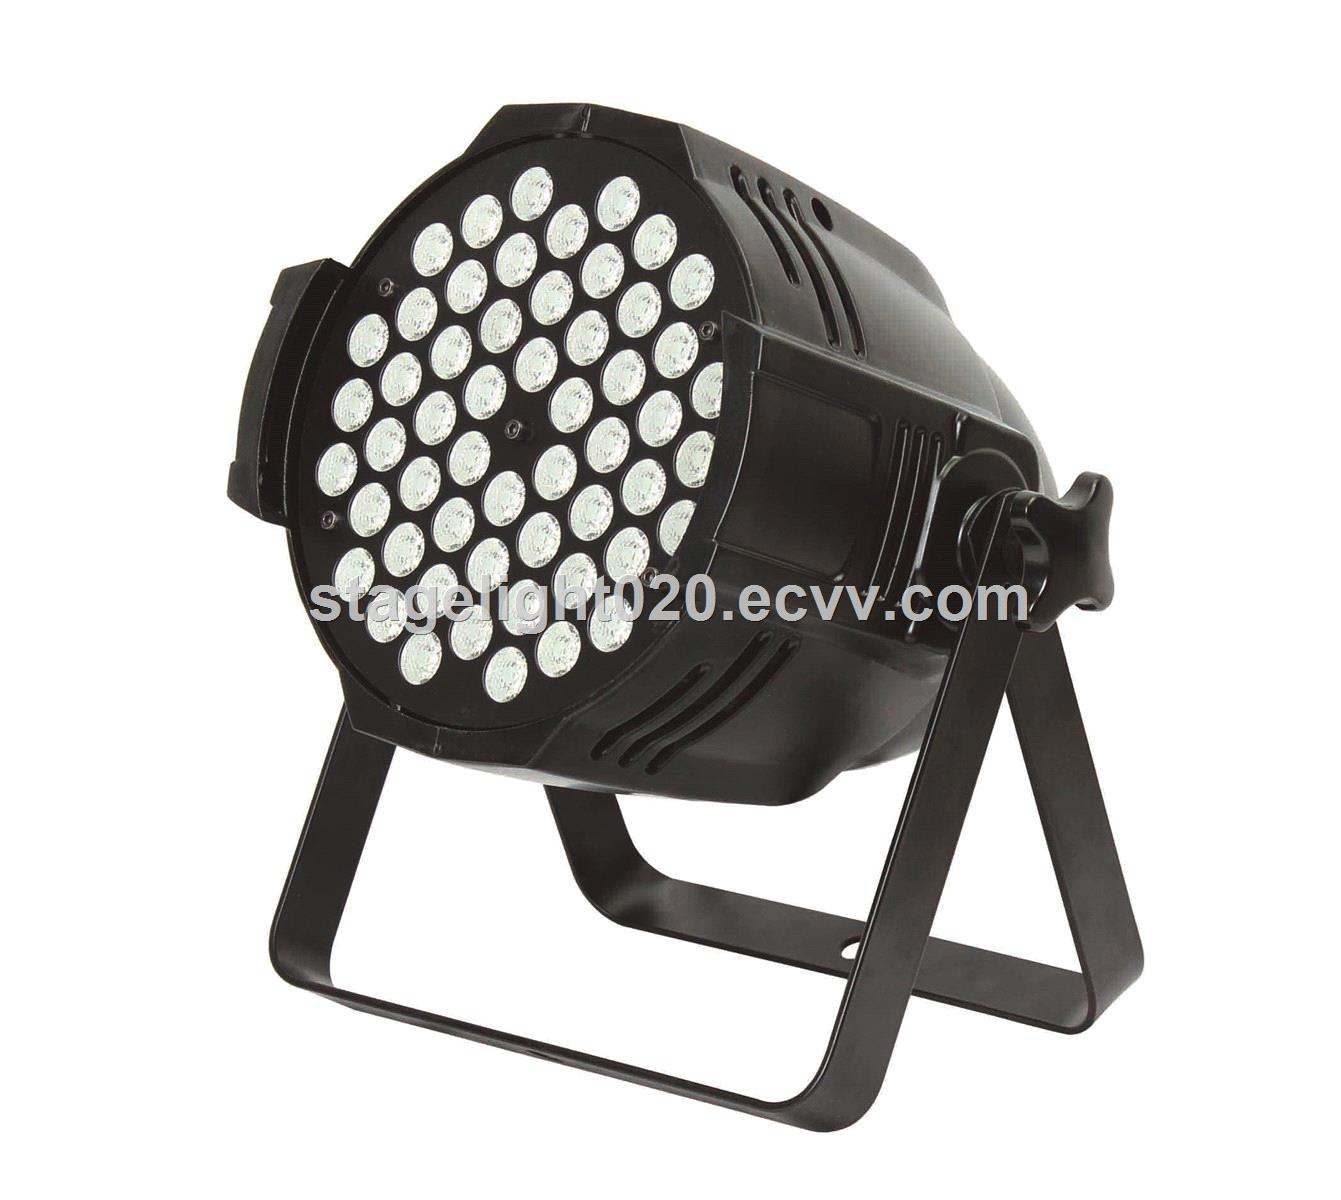 54x3w Warm White LED Par,Church Light,Meeting Room Light,Audio Light,Home LED Light